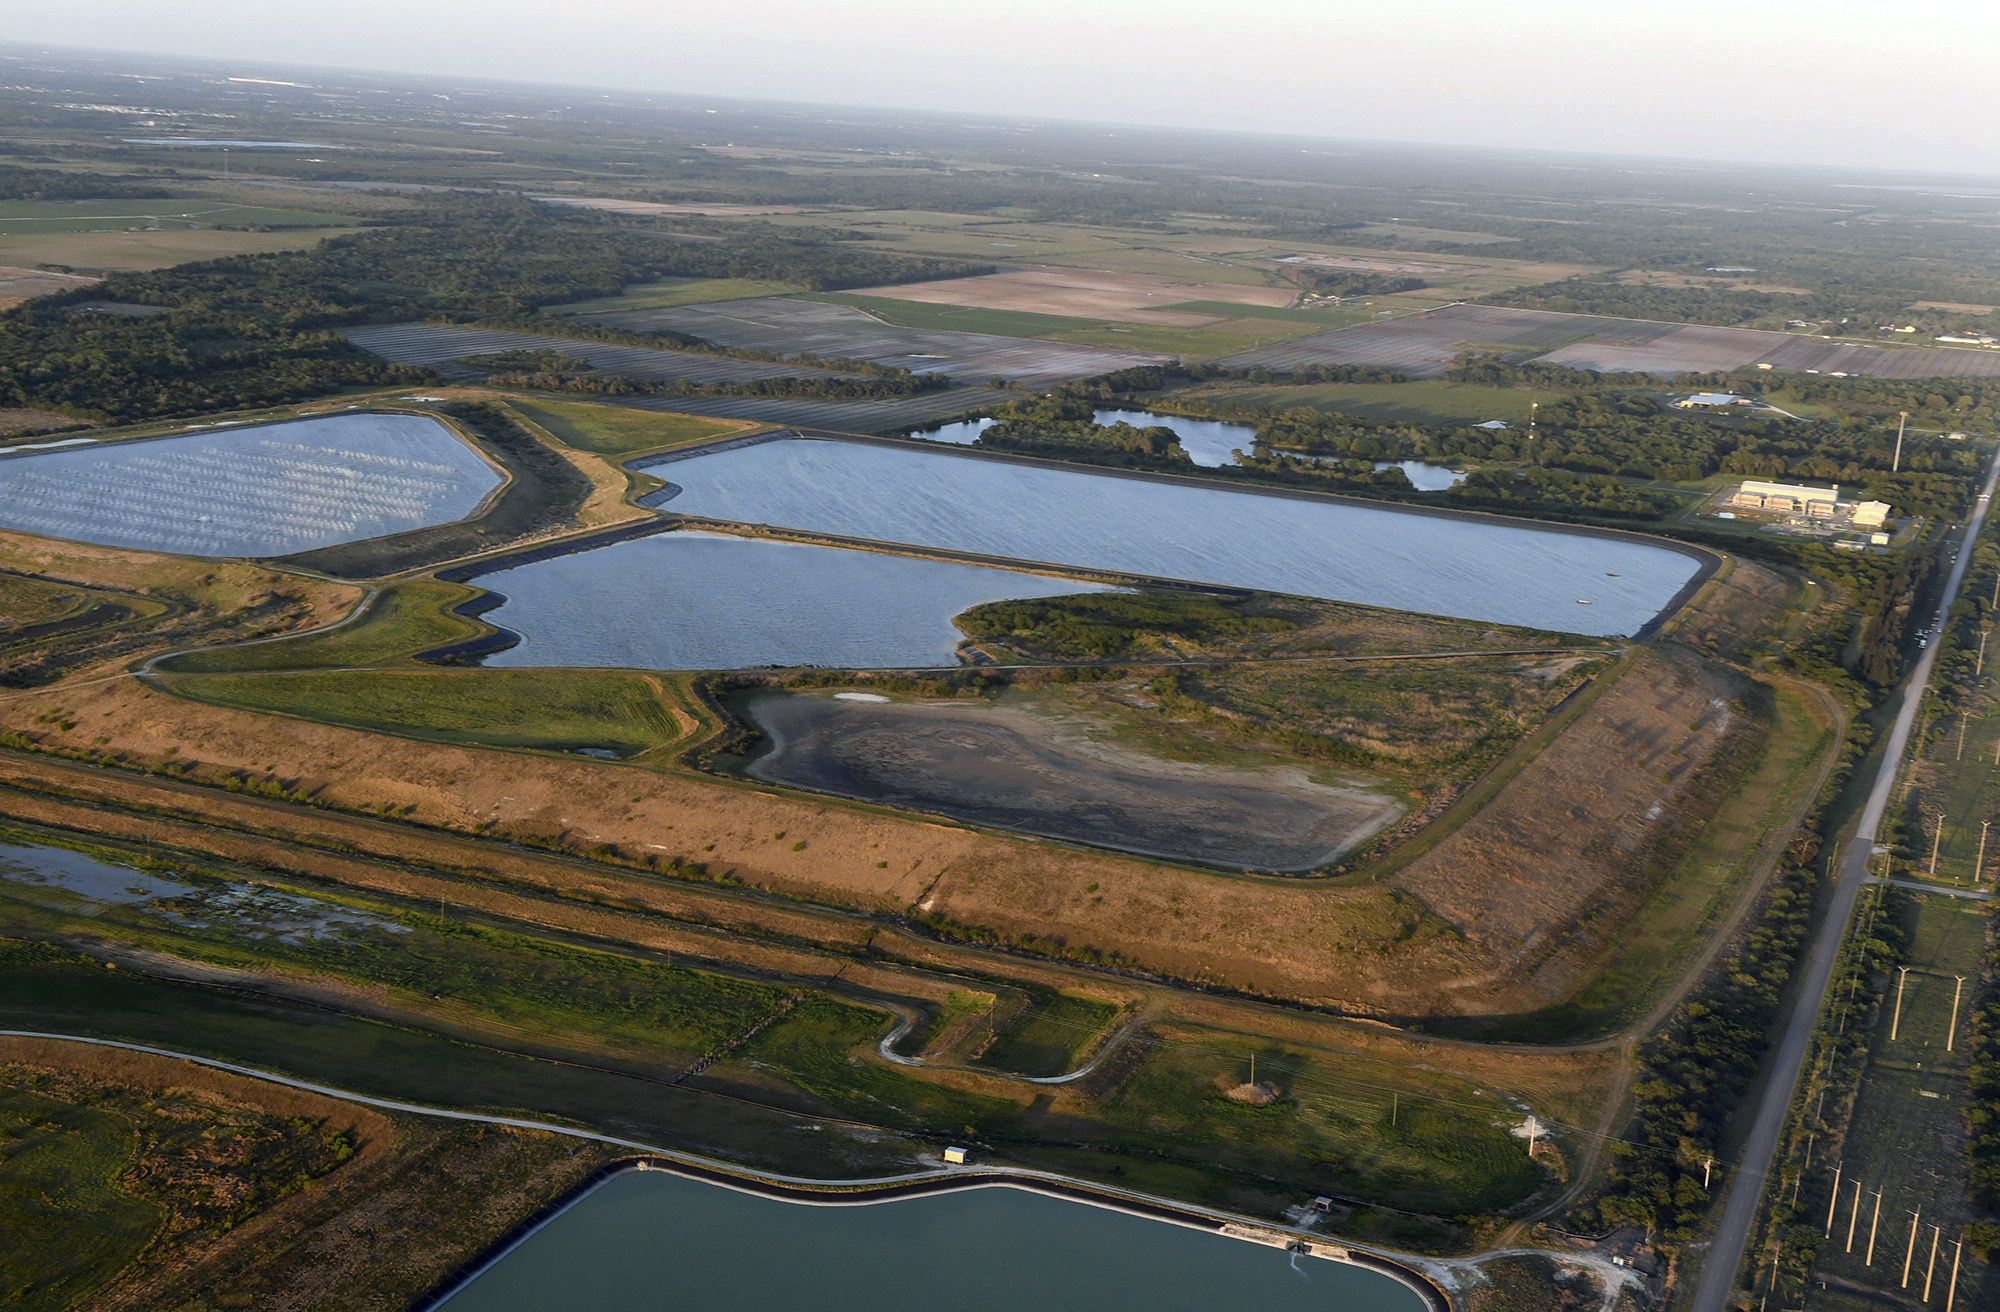 Florida reservoir leaking toxic wastewater demonstrates decades of  regulatory failure, environmental activists say